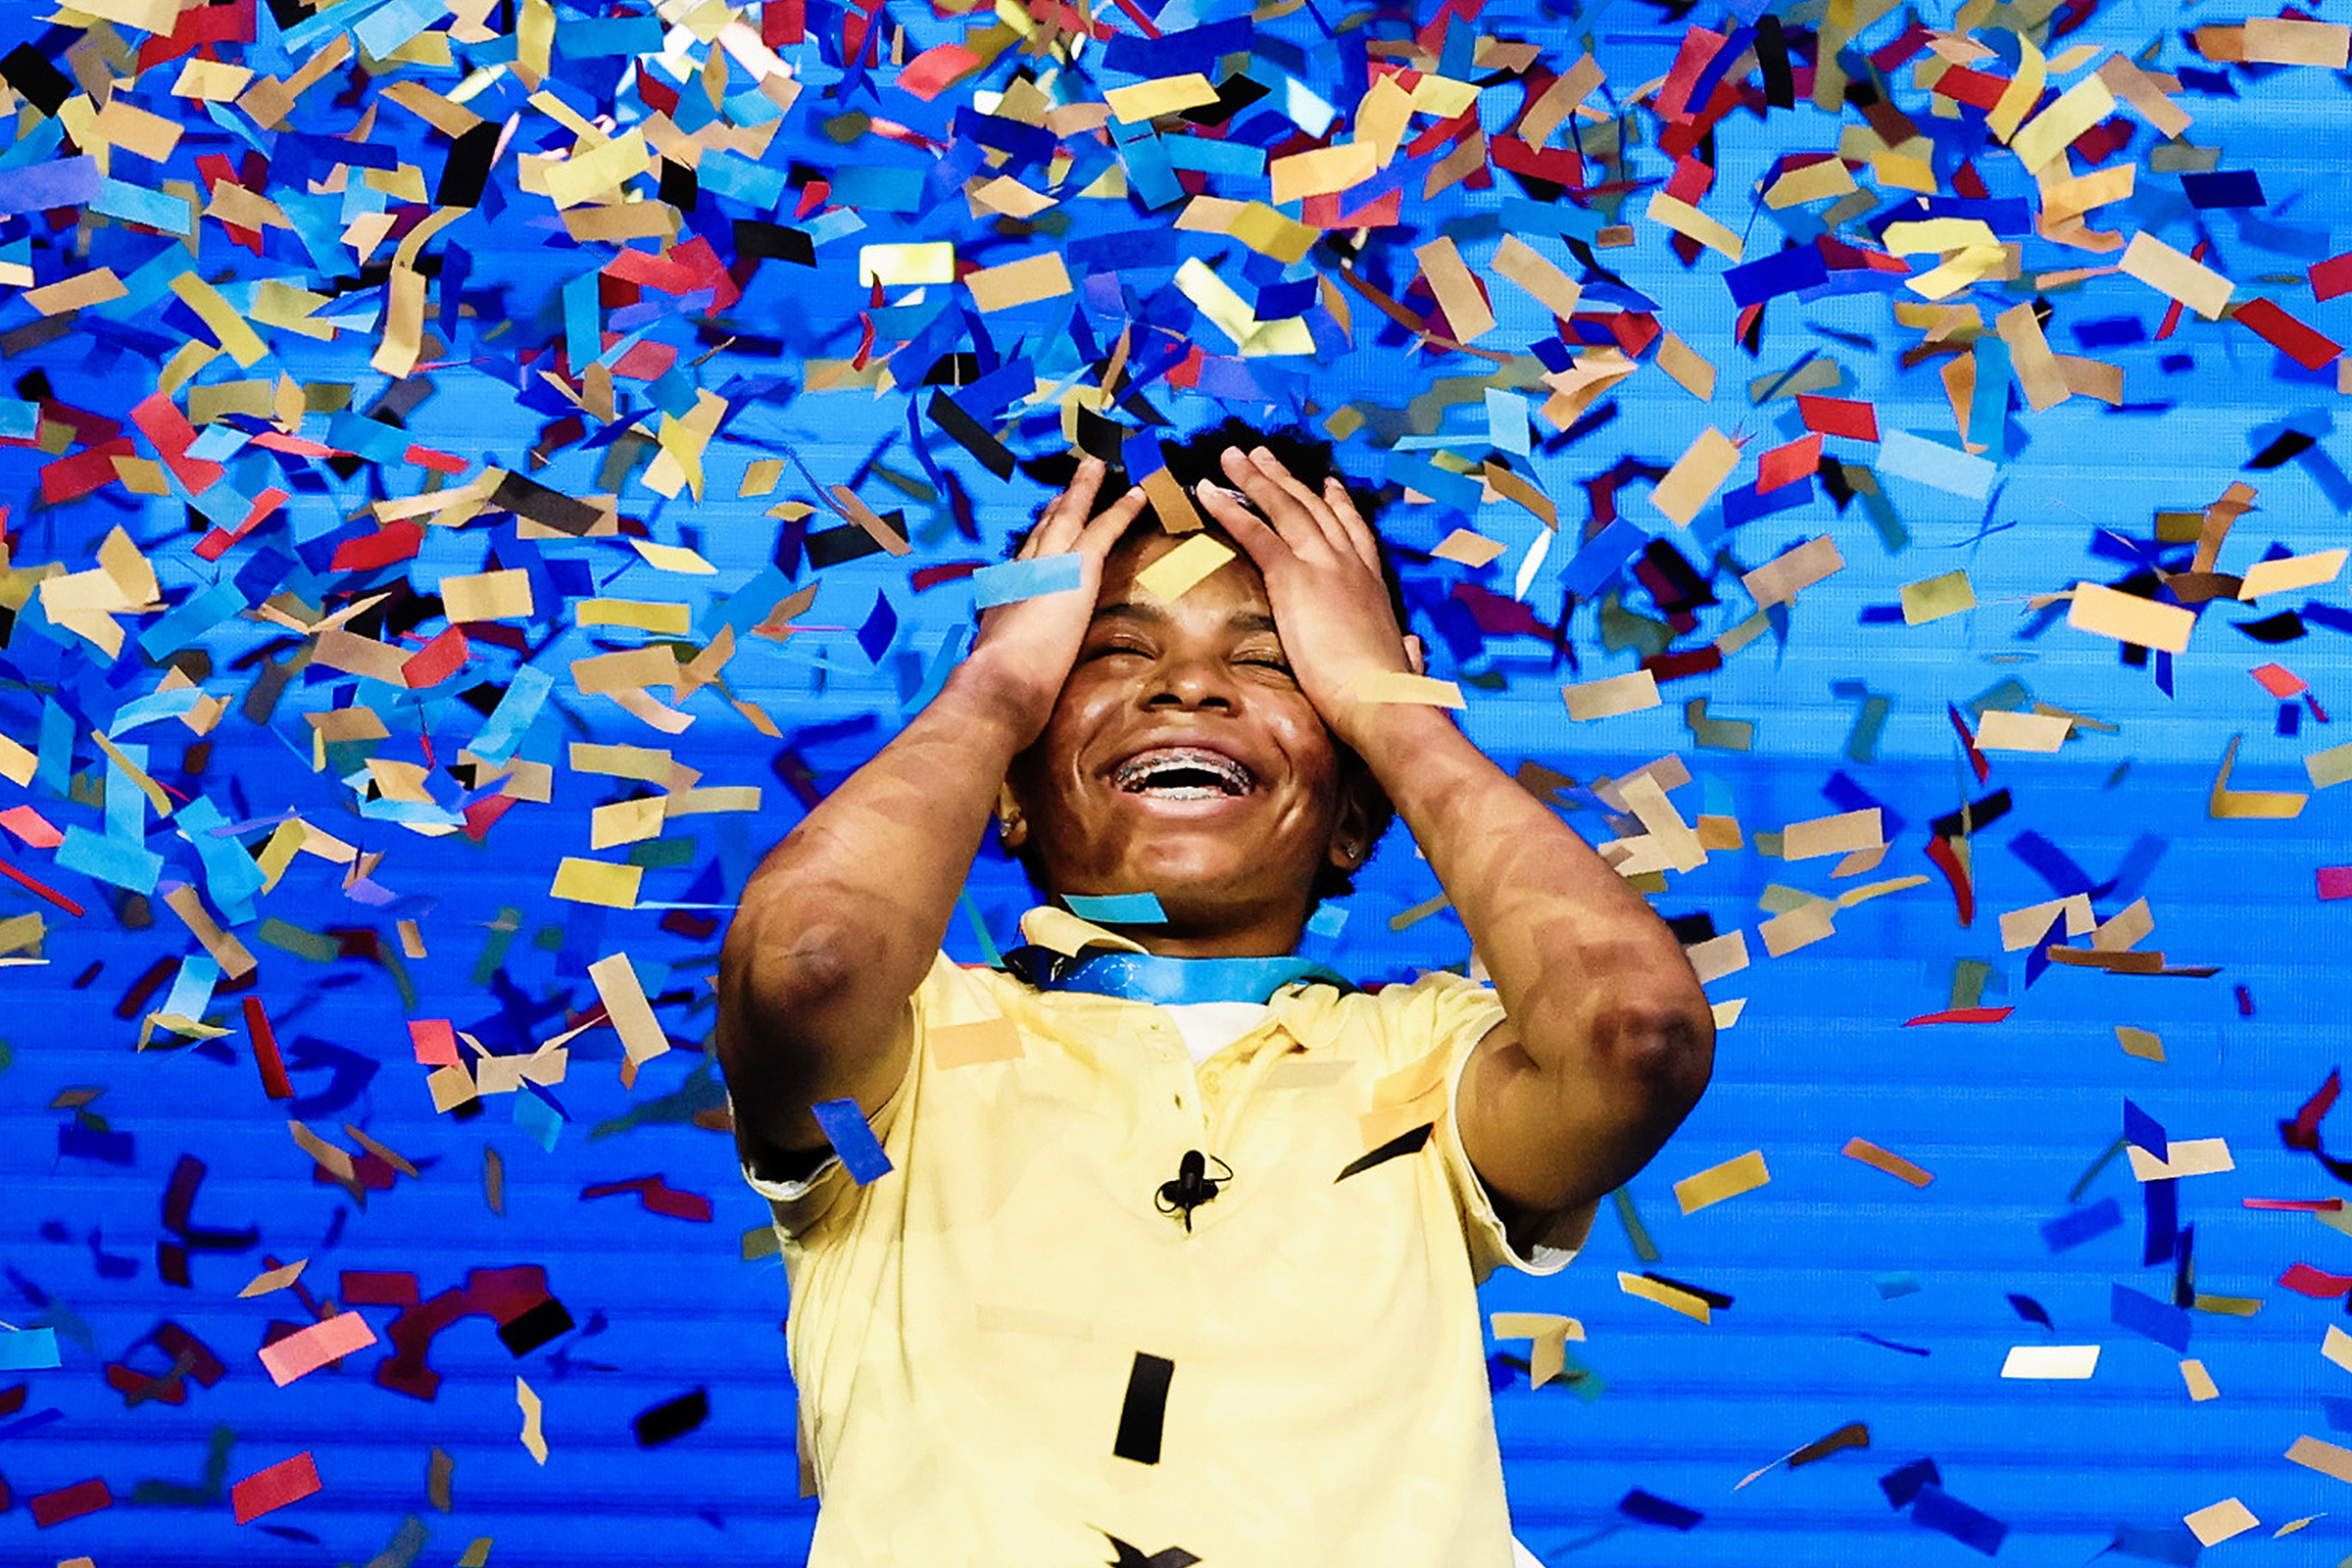 Zaila Avant-garde, 14, reacts to winning the Scripps National Spelling Bee in Orlando, Fla., on July 8, 2021. She became the first Black American to win and hold the title of national spelling bee champion.